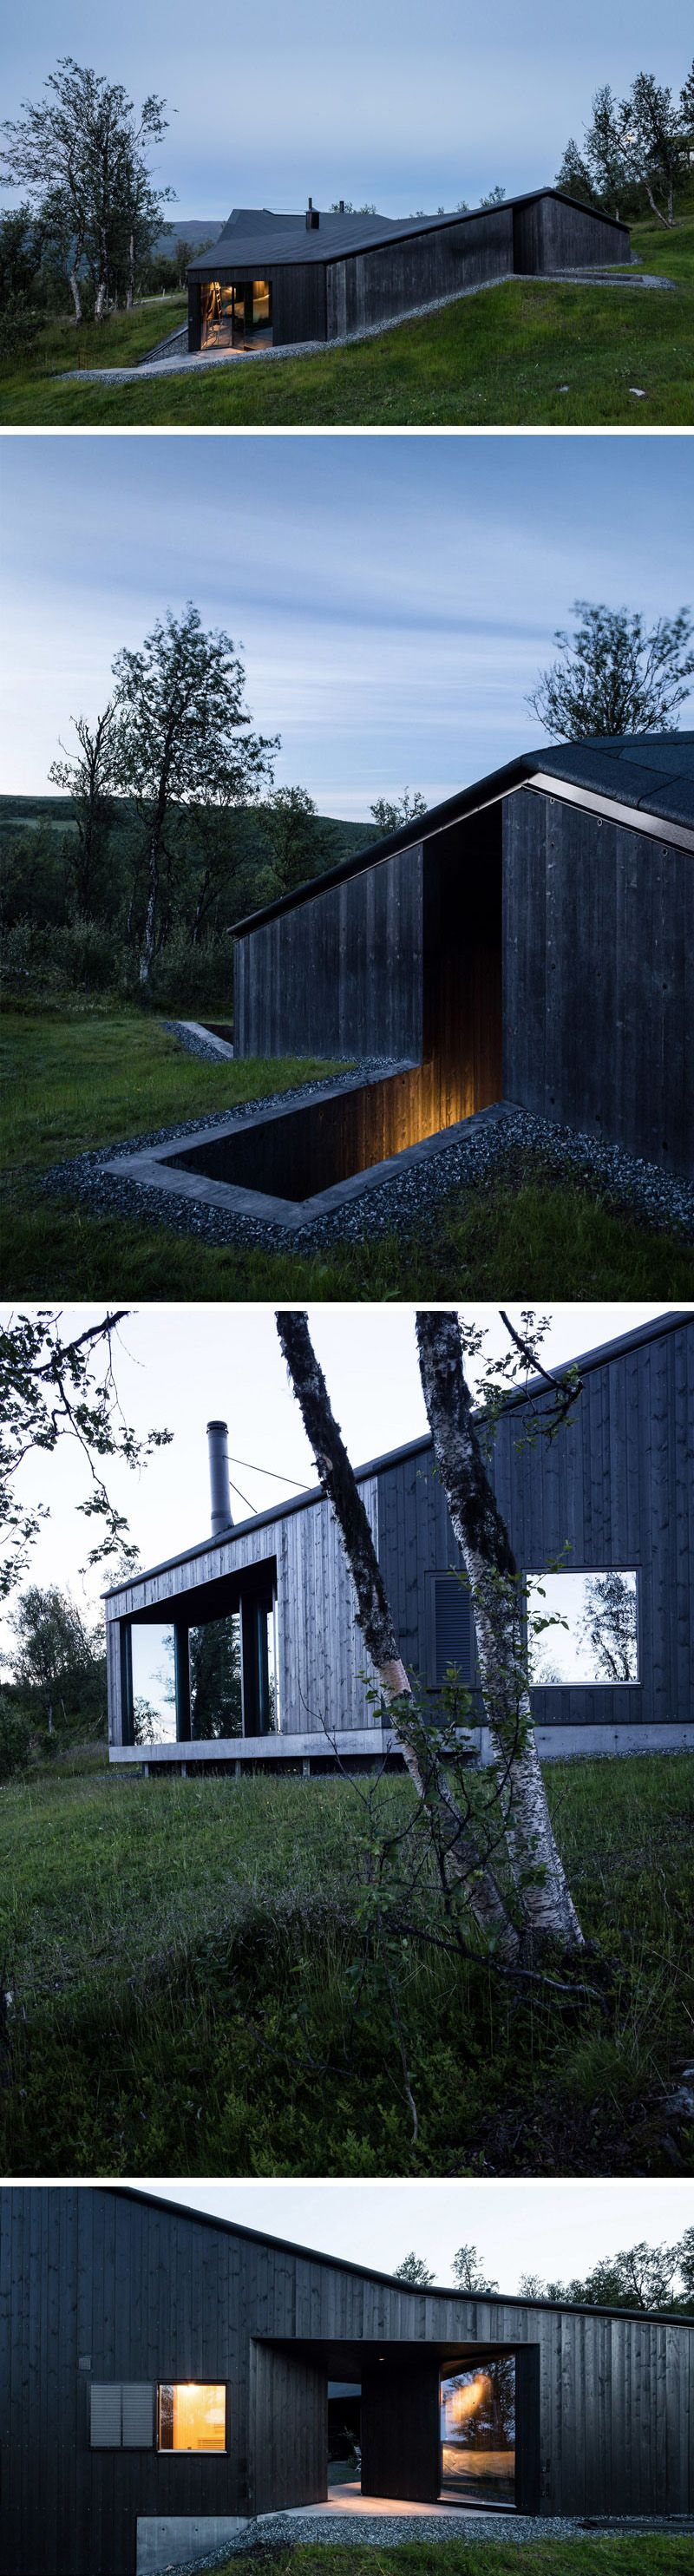 14 Examples Of Modern Houses With Black Exteriors Wood siding